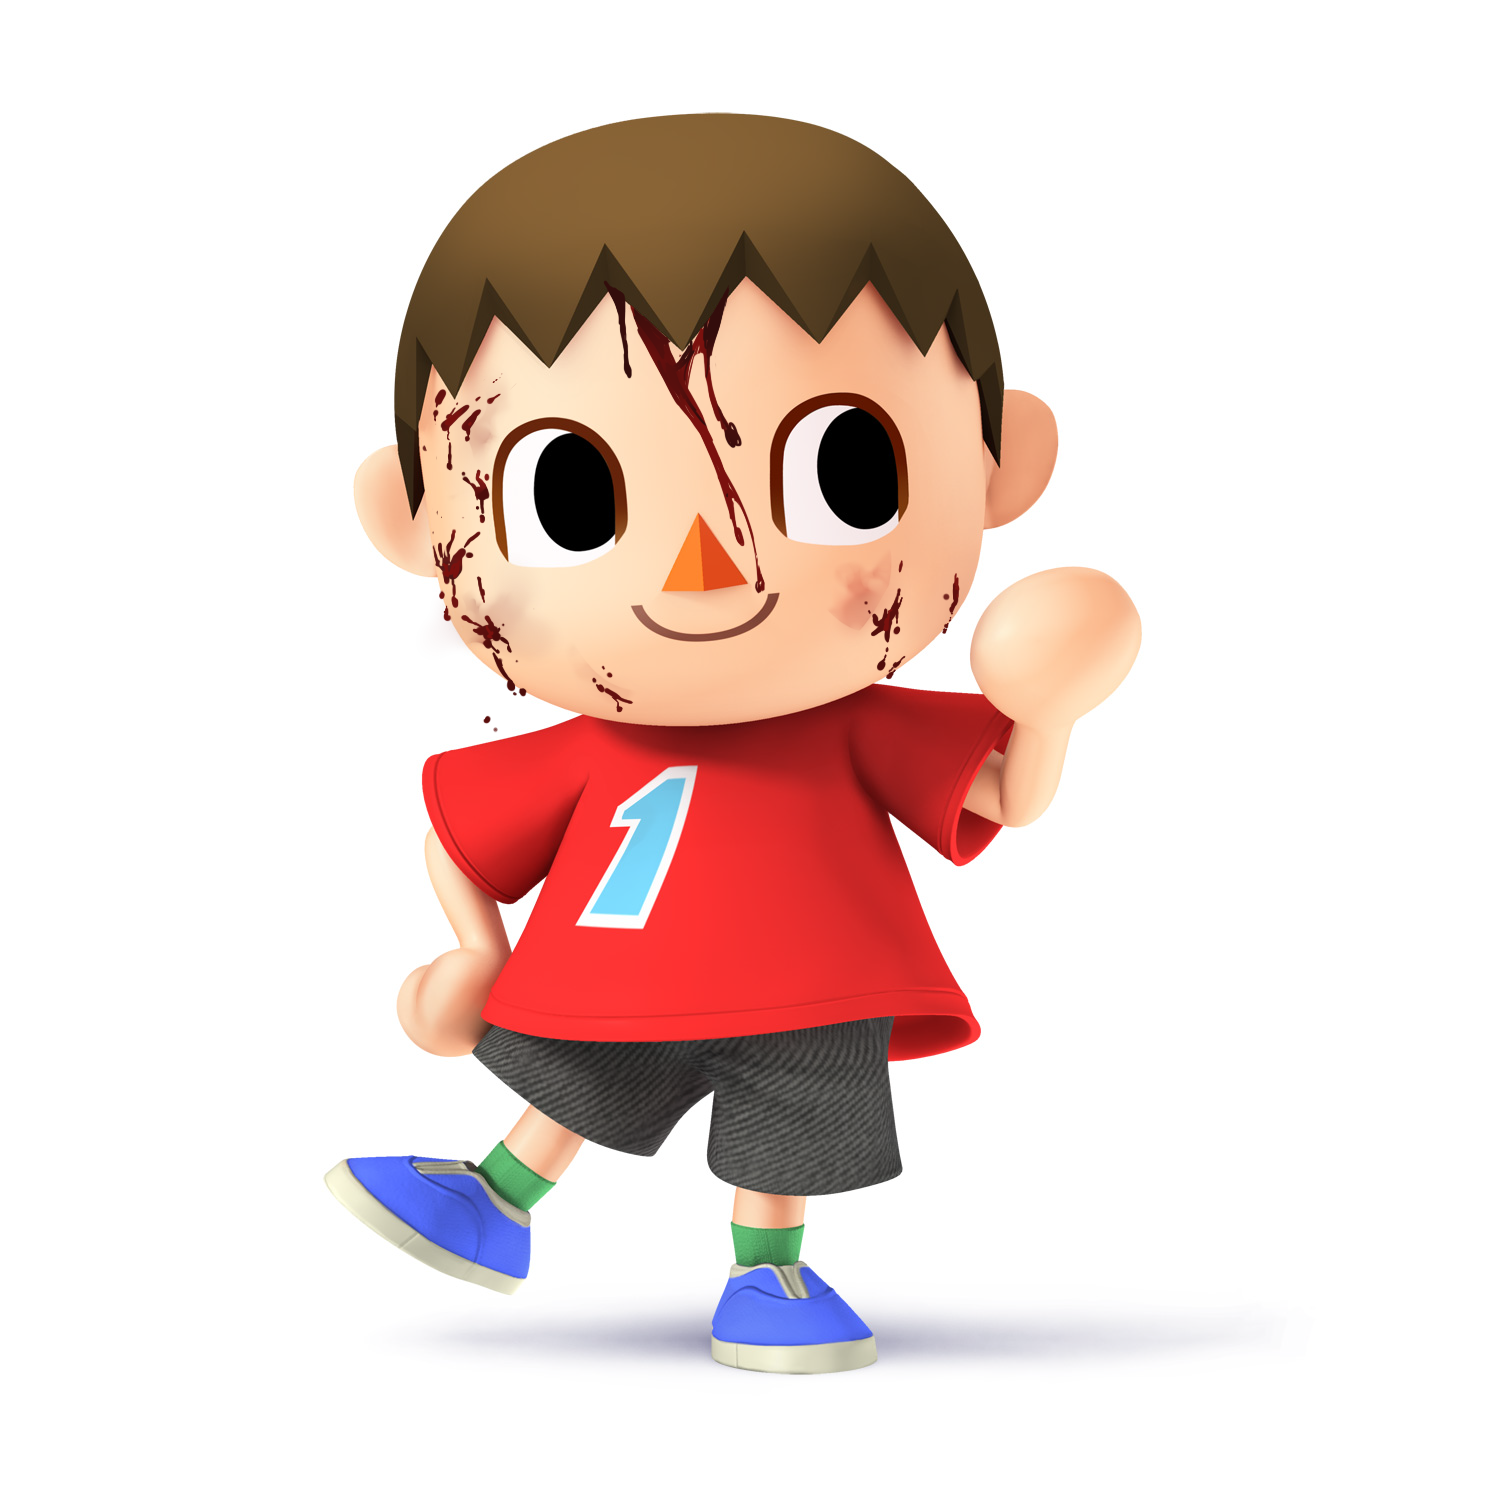 tumblr_static_villager.png